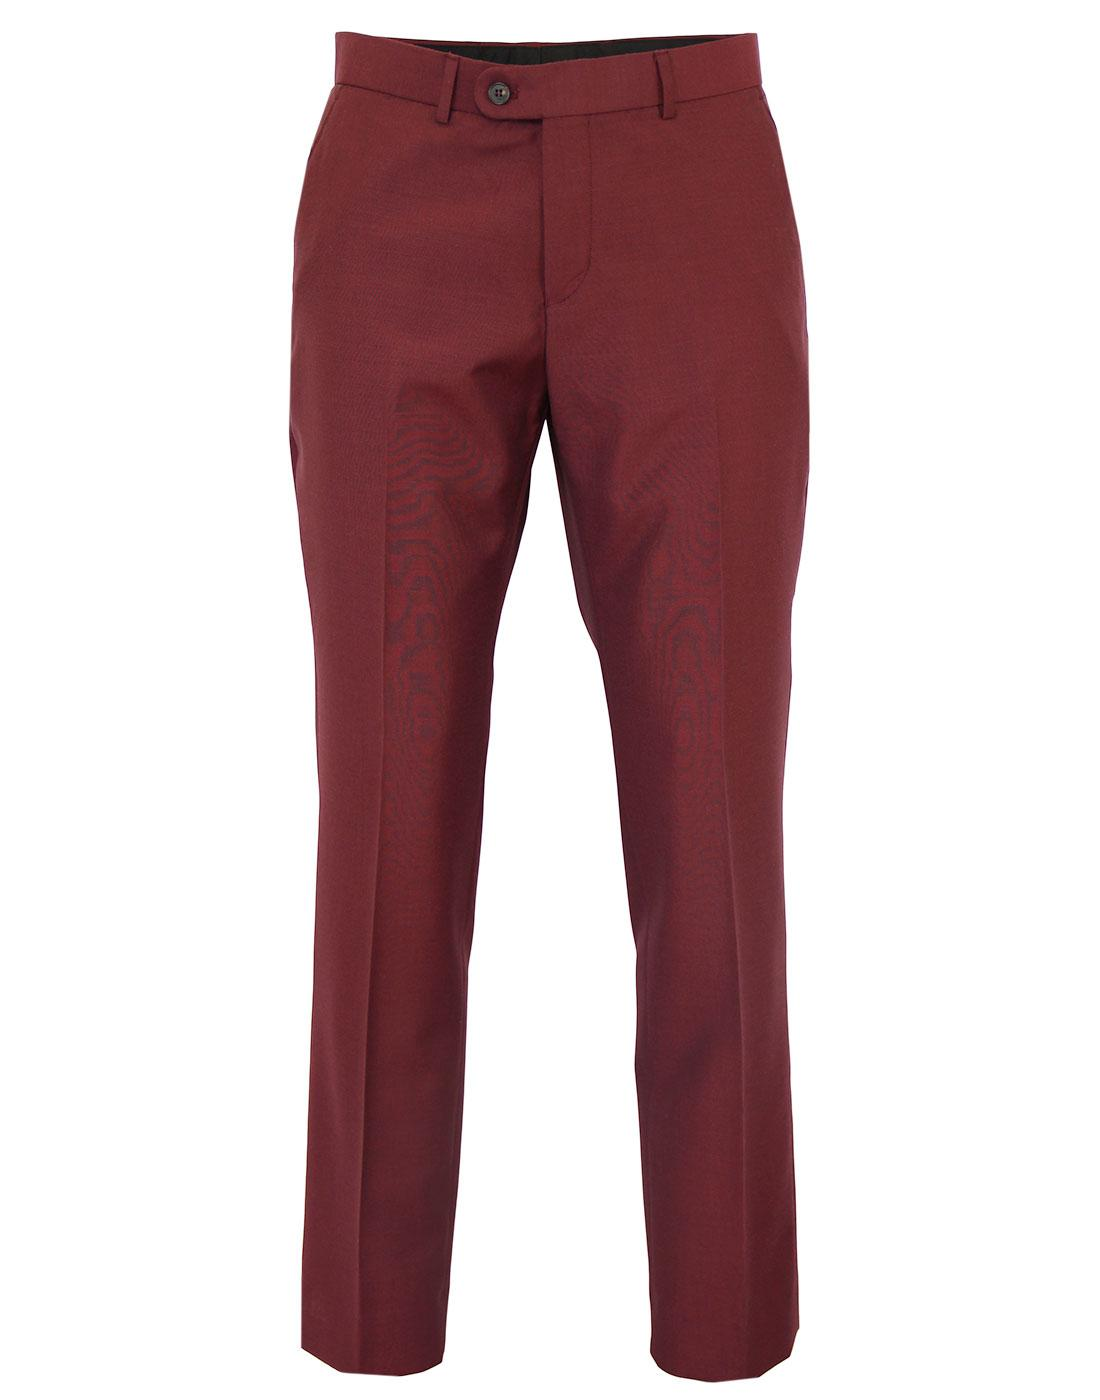 Tailored by Madcap England Tonic Mohair Trousers B